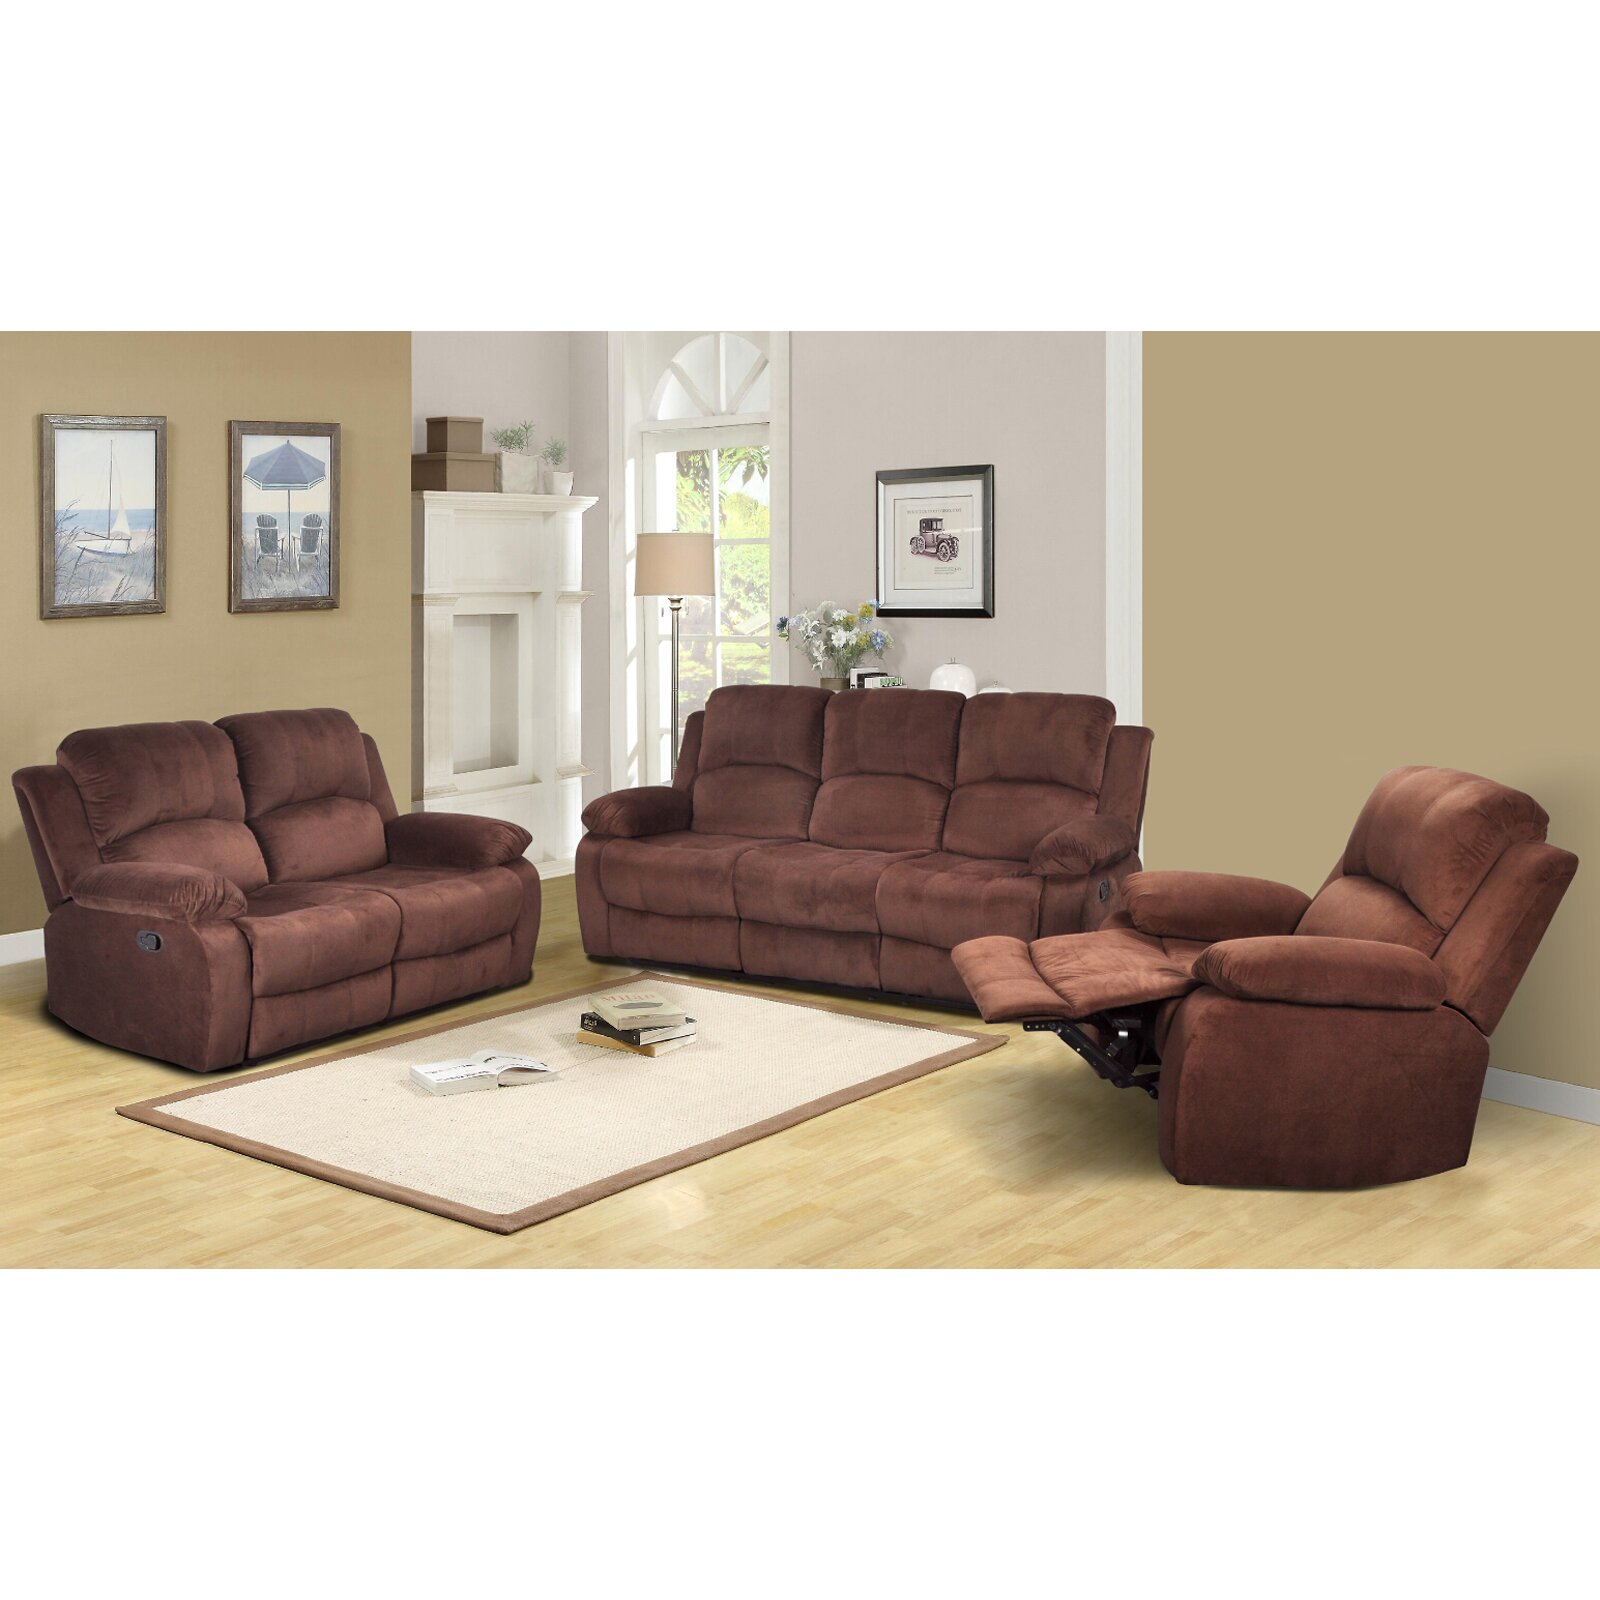 Beverly fine furniture denver 3 piece microfiber reclining for Apartment furniture sets